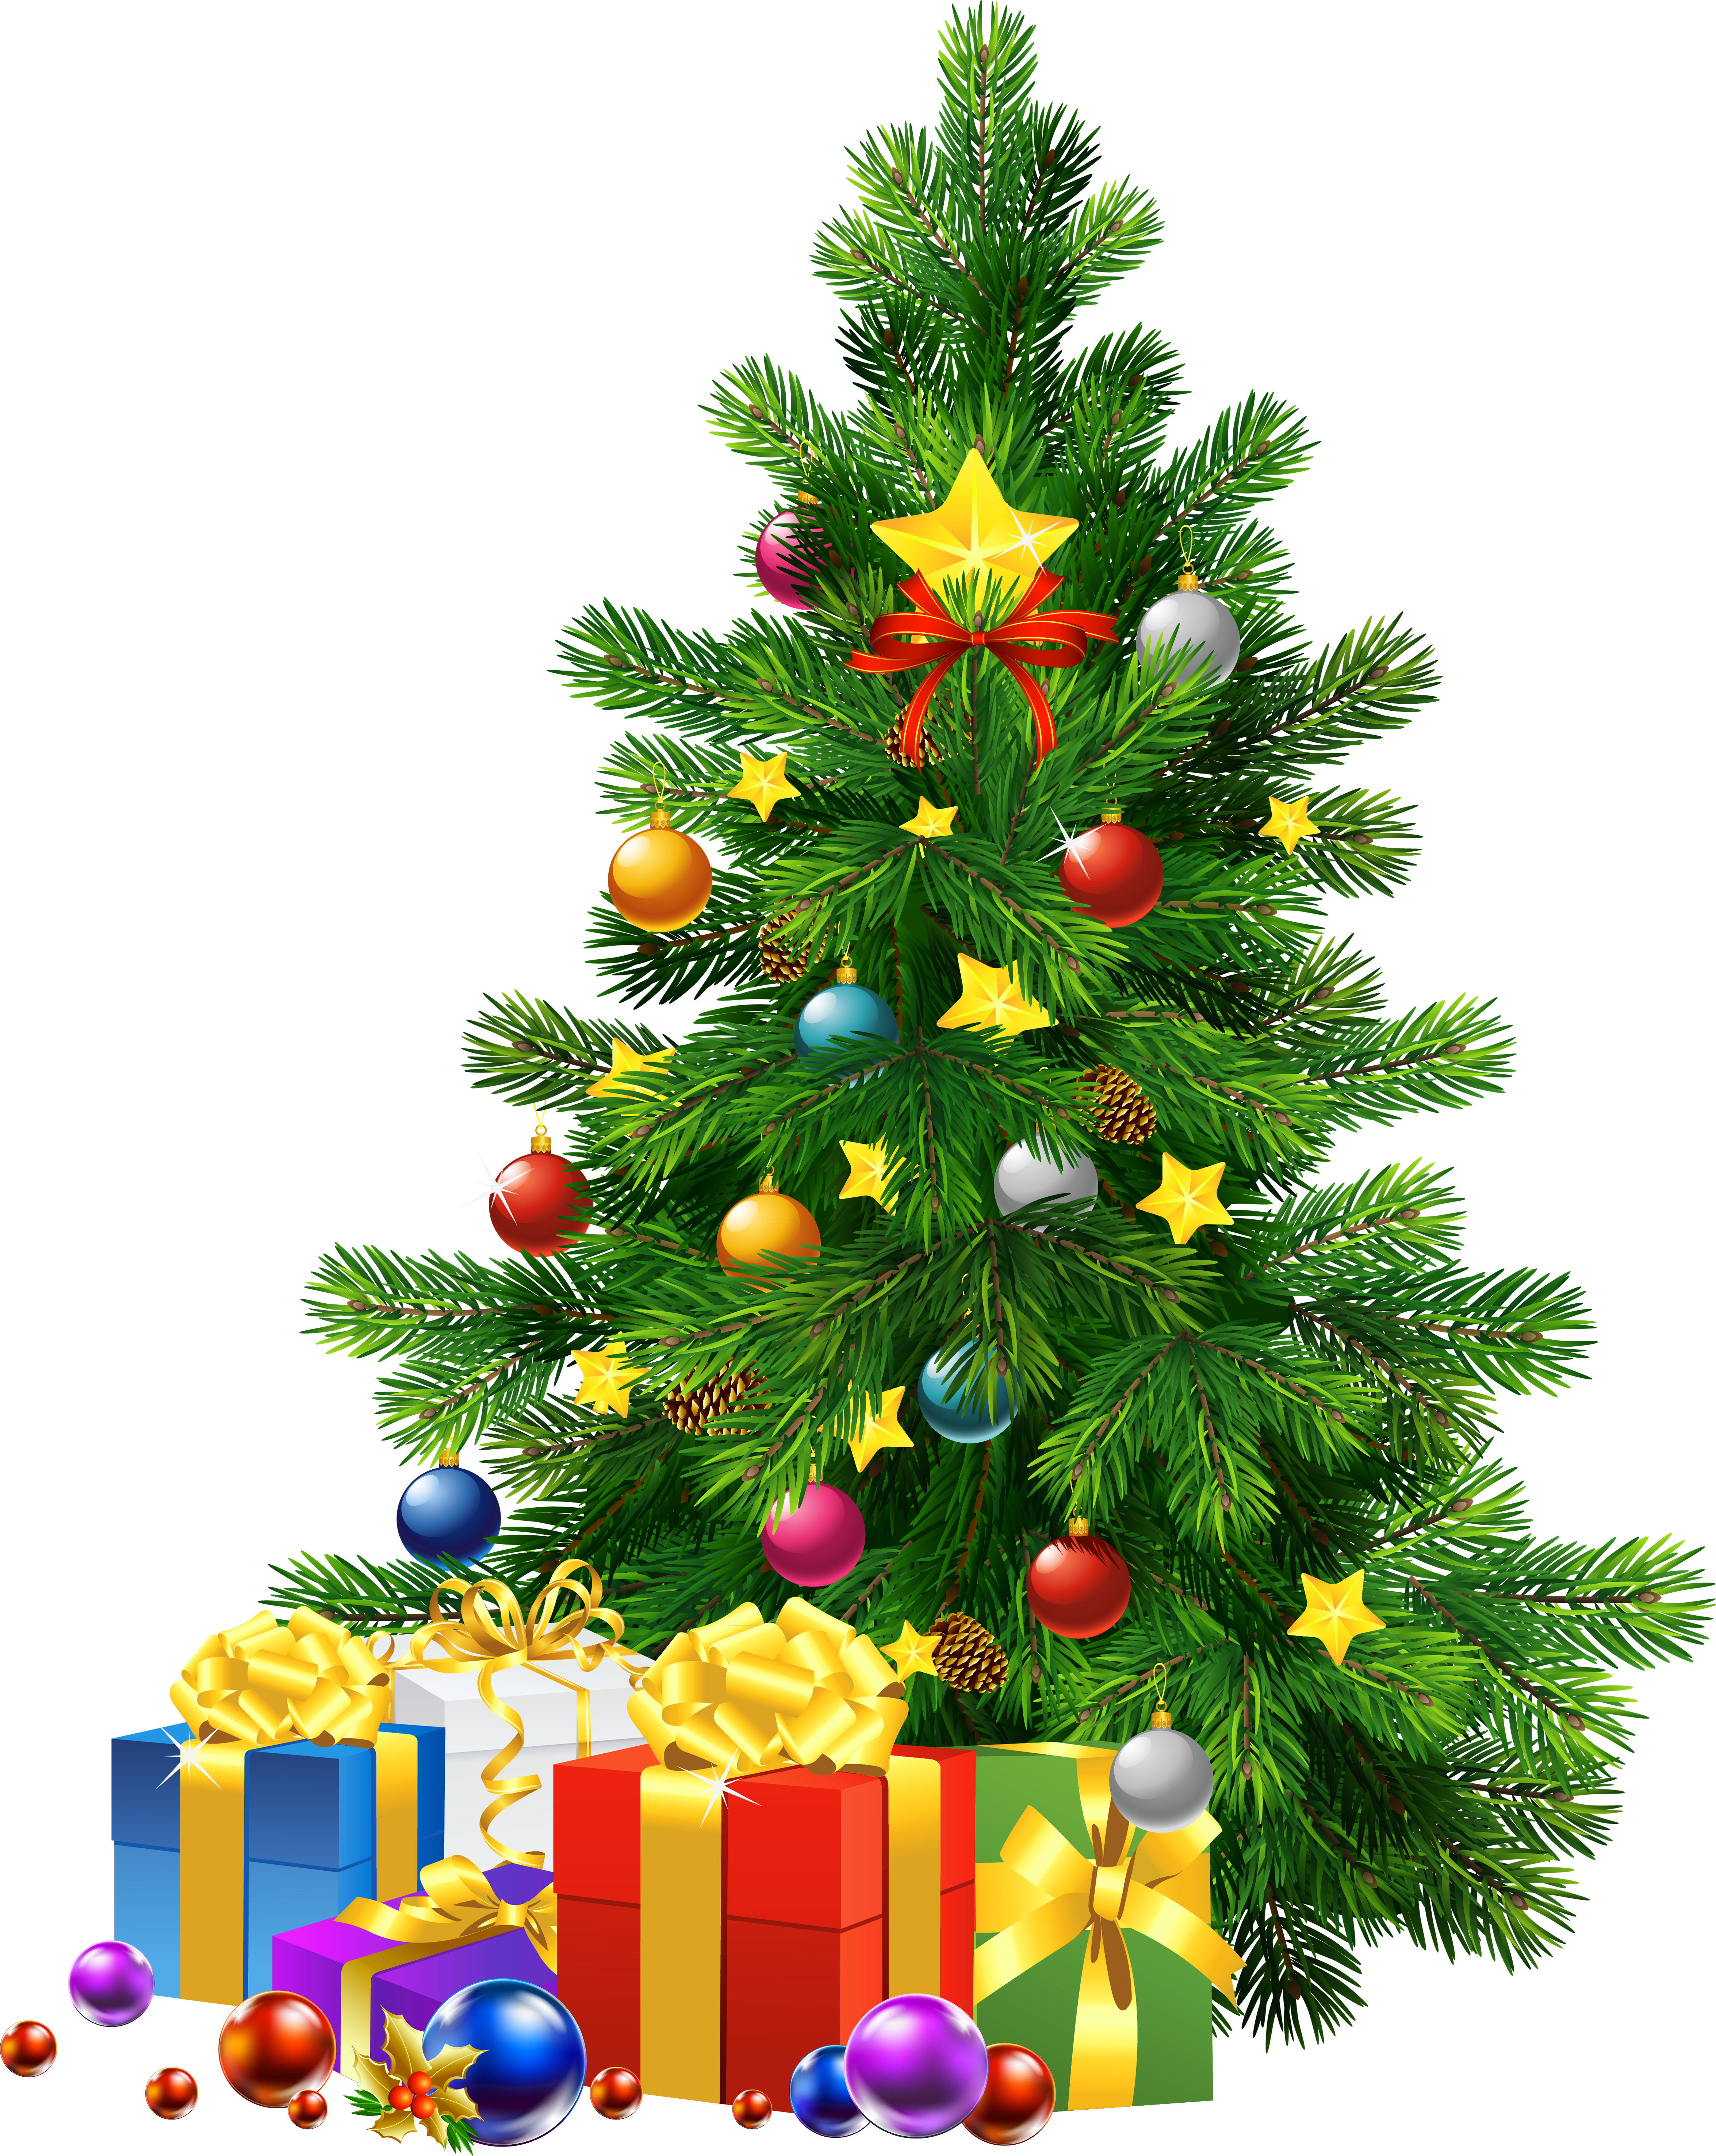 Download Happy Christmas Tree Png Full Size Png Image Pngkit Jweyrich and is about borders and frames, cartoon, christmas, christmas. pngkit